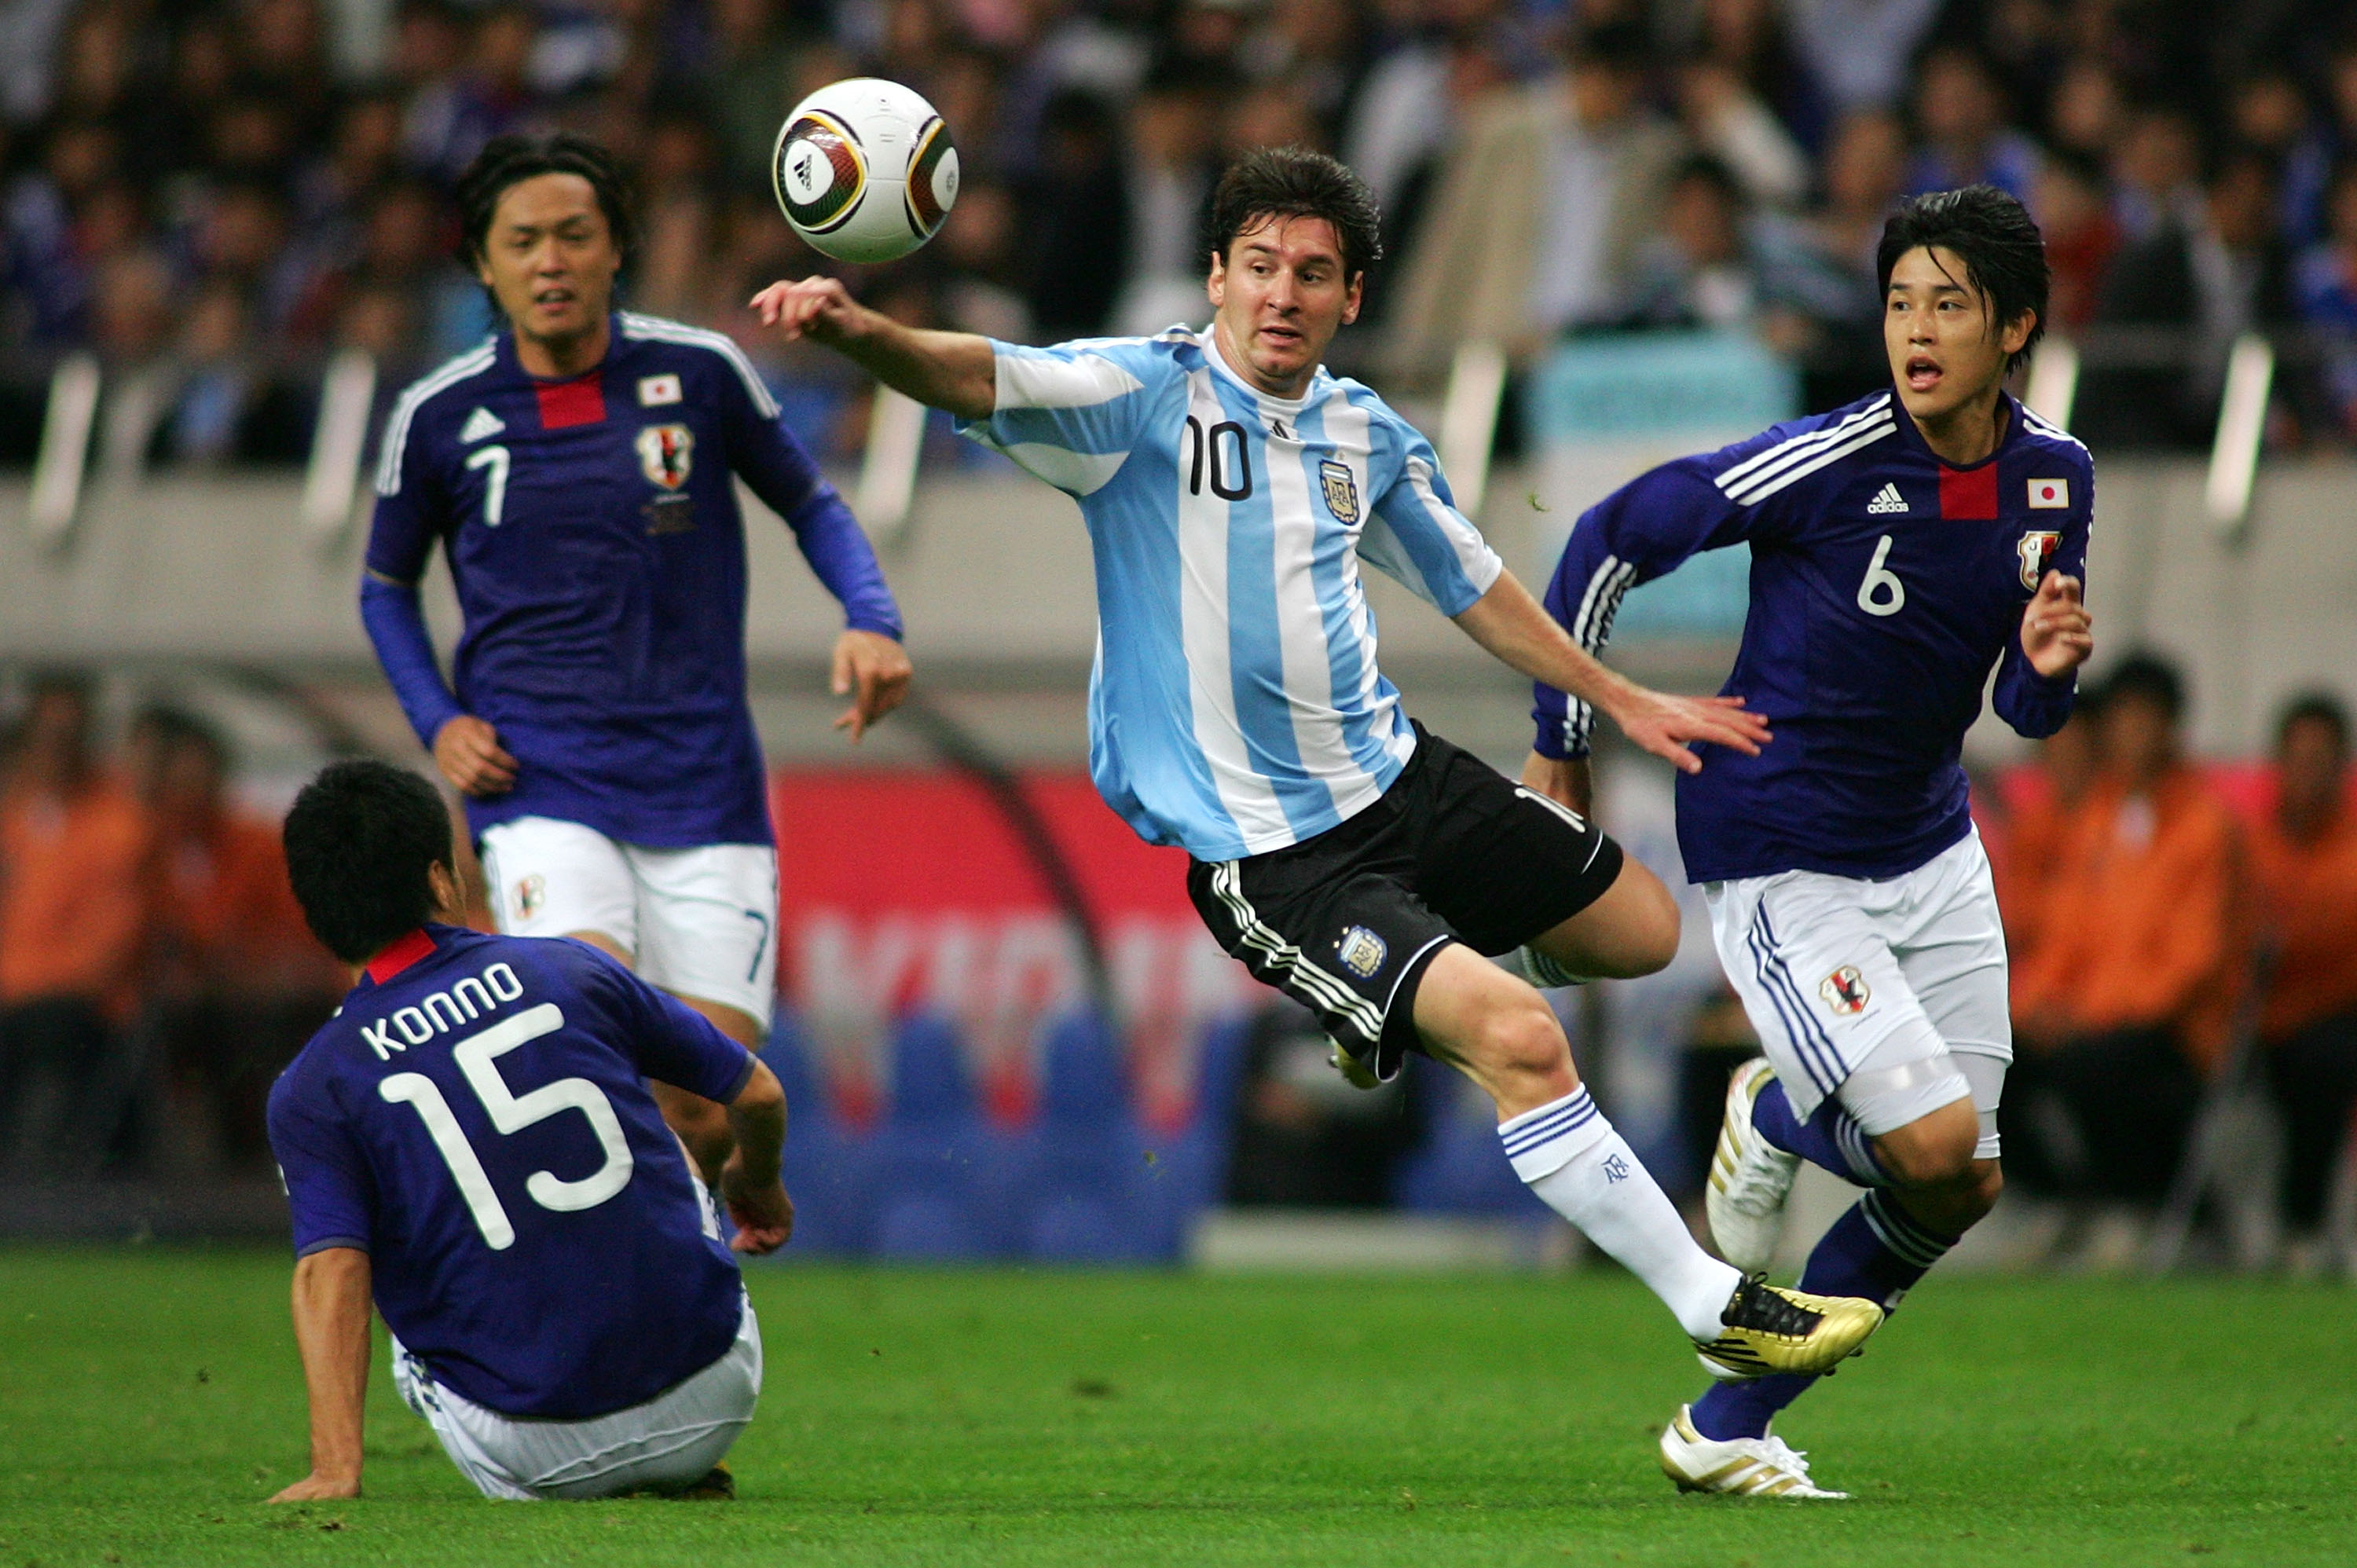 Will 2011 be the year Messi replicates his Barcelona form at the national team level